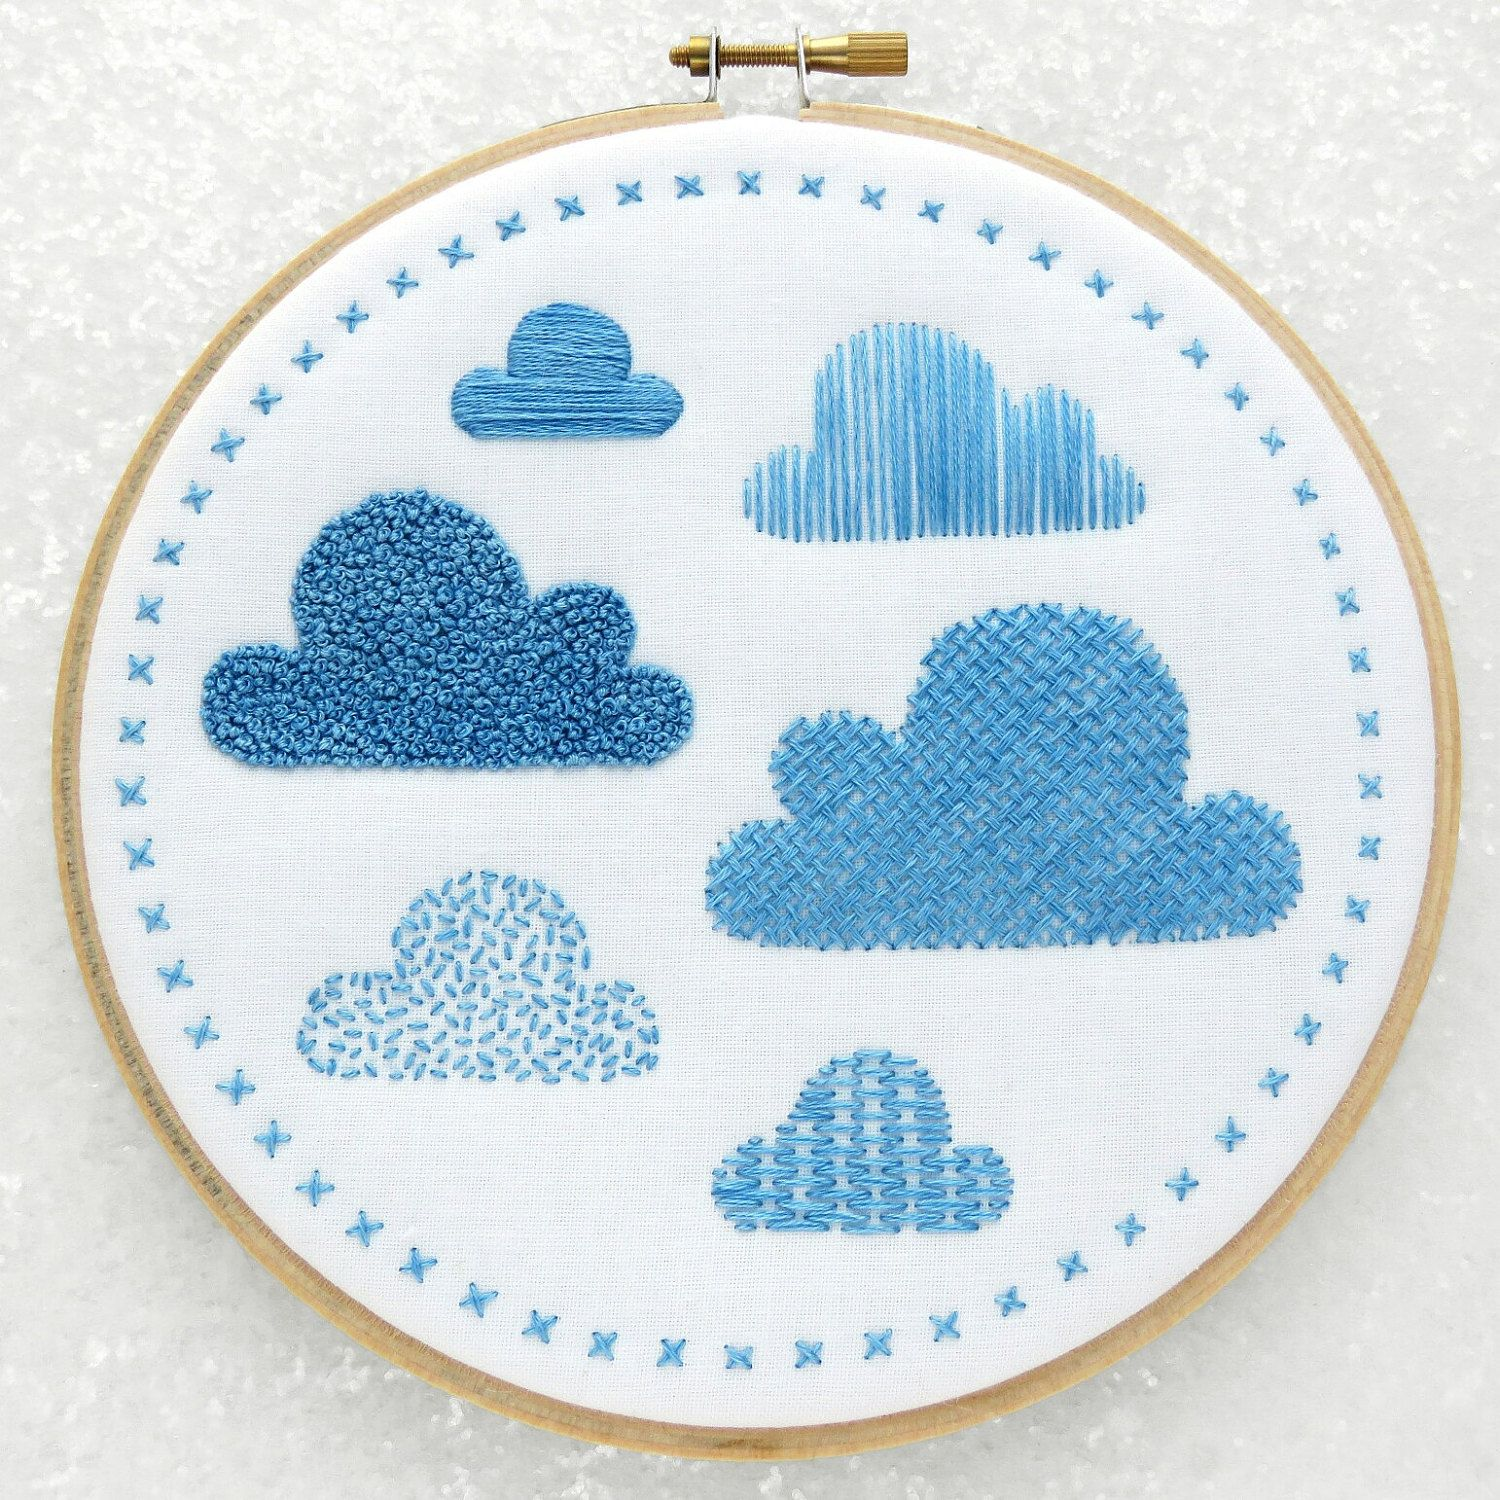 Embroidery Sampler Fabric Pattern, Clouds Hand Embroidery Kit, Modern Needlework Pattern, Beginners Hoop Art Pattern, DIY Nursery Decor